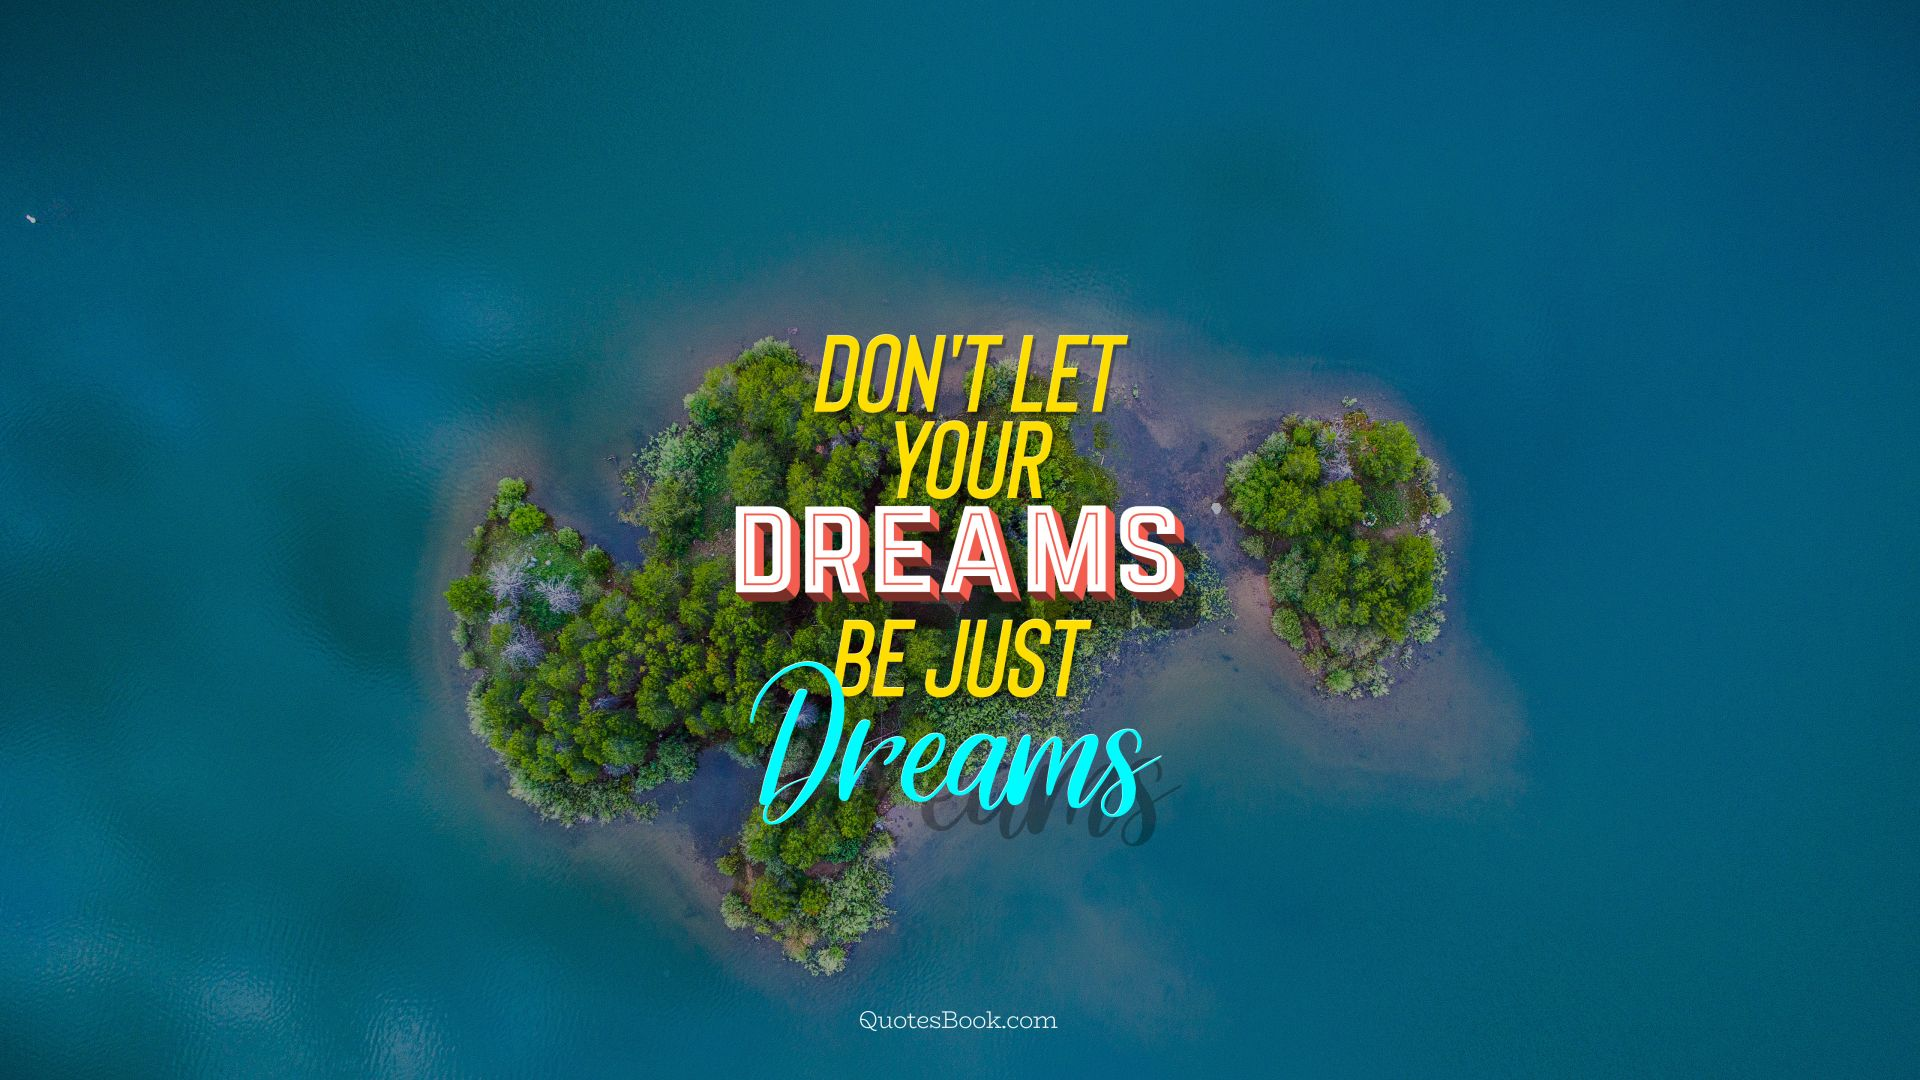 Don't let your dreams be just dreams